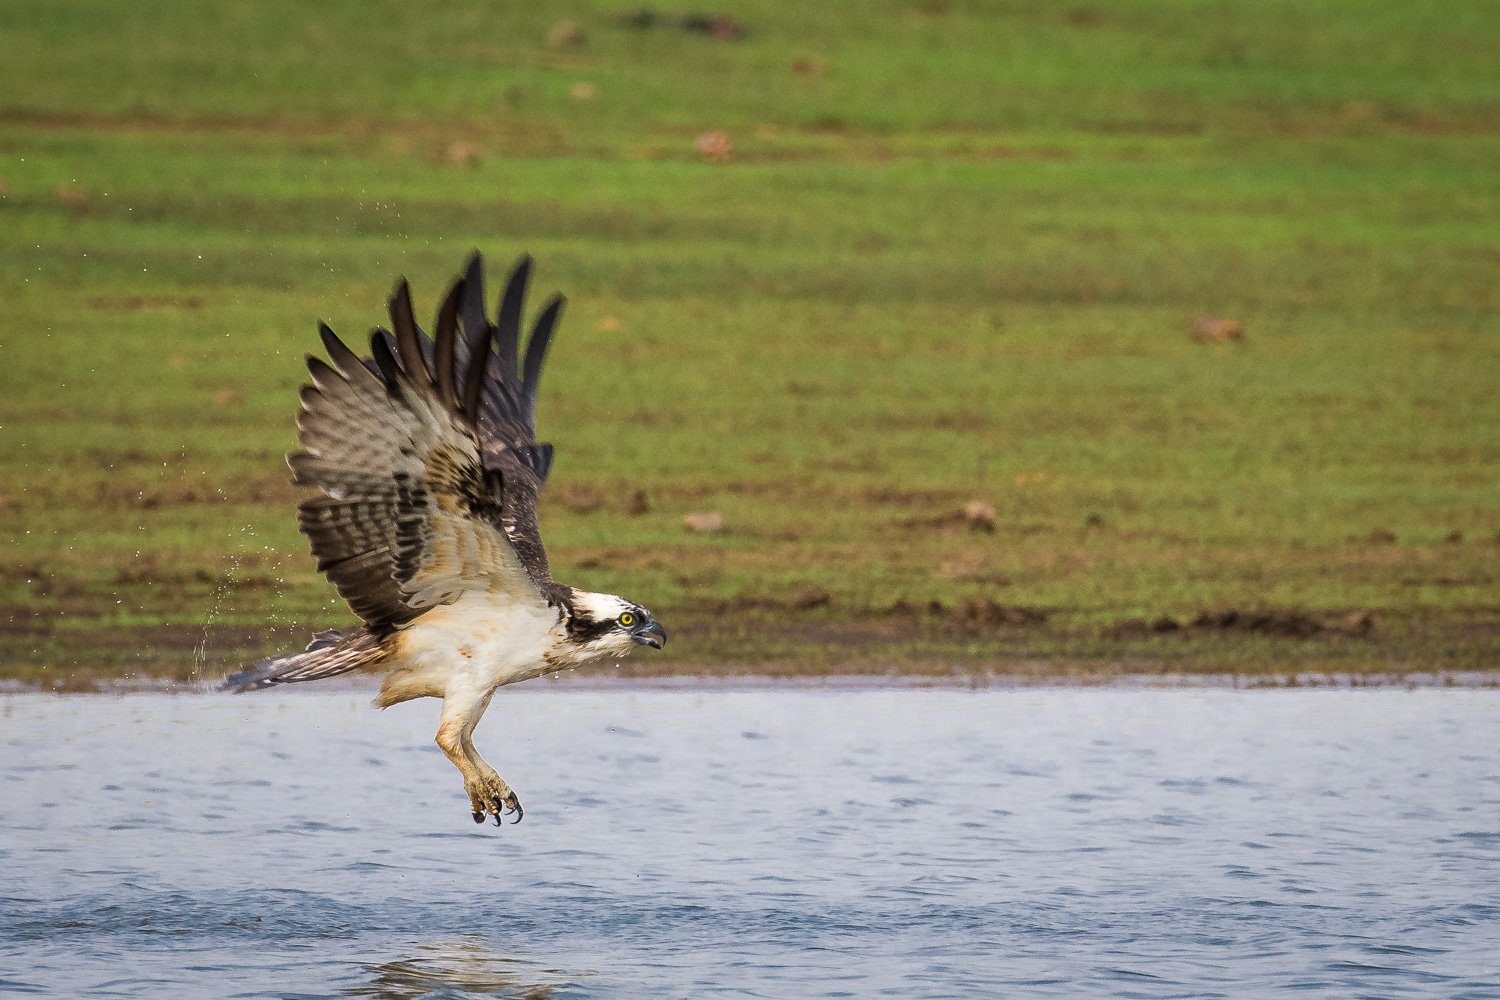 Image: Osprey in flight. Focus performance of the Nikon D500 for Birds in flight is excellent. Exif...